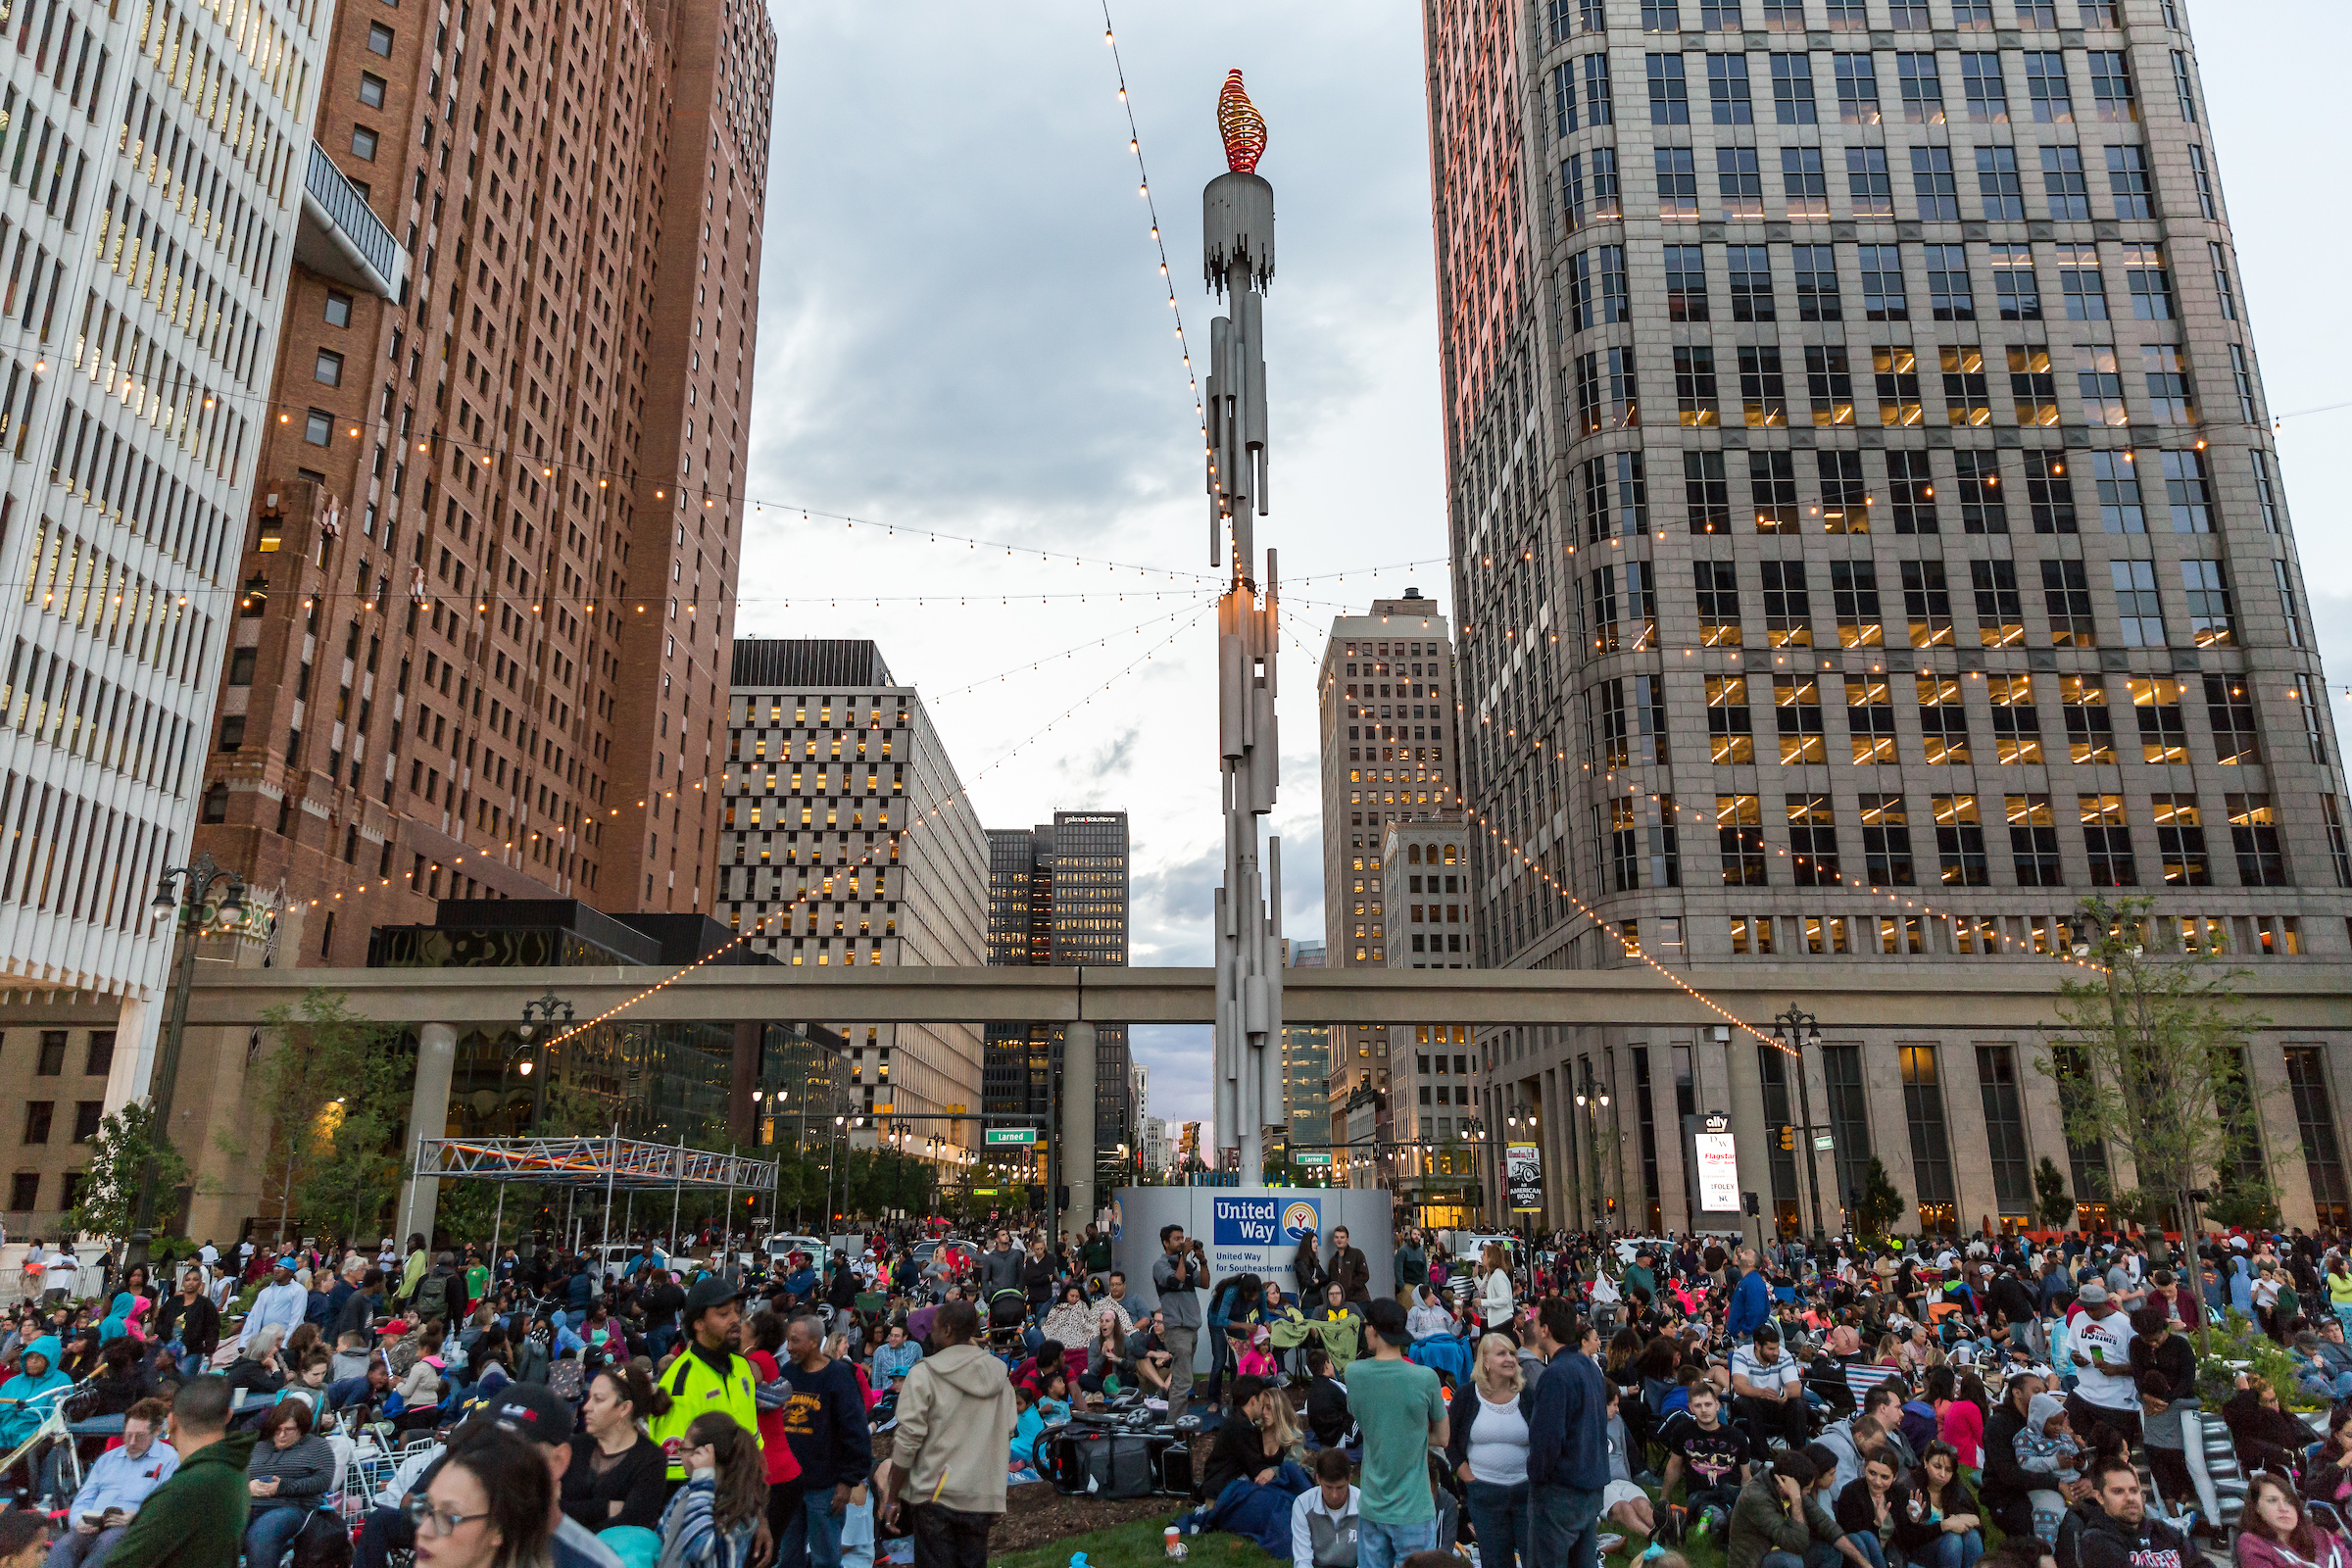 New report shows Detroit diversifying, but anxieties around race remain